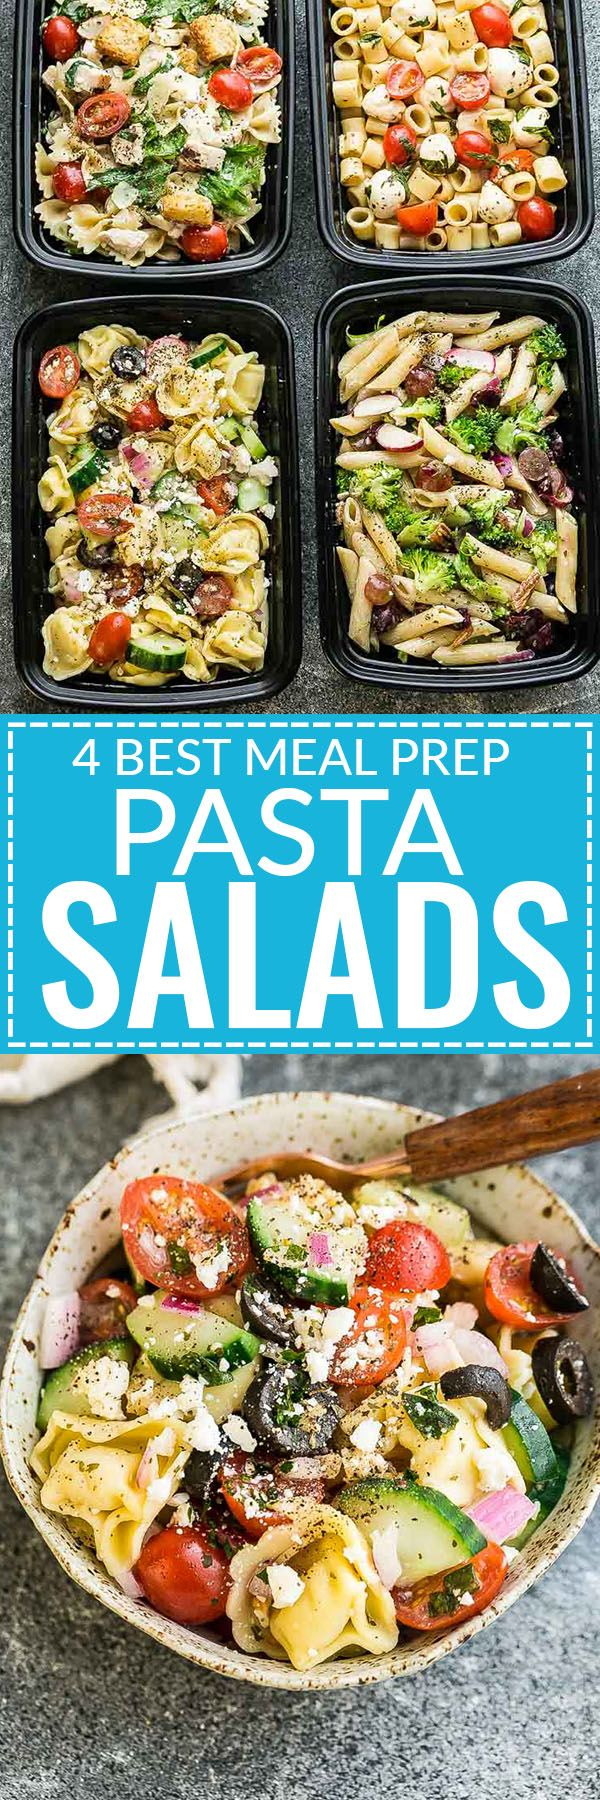 22 best Pasta images on Pinterest   Pasta, Kitchens and Pasta recipes